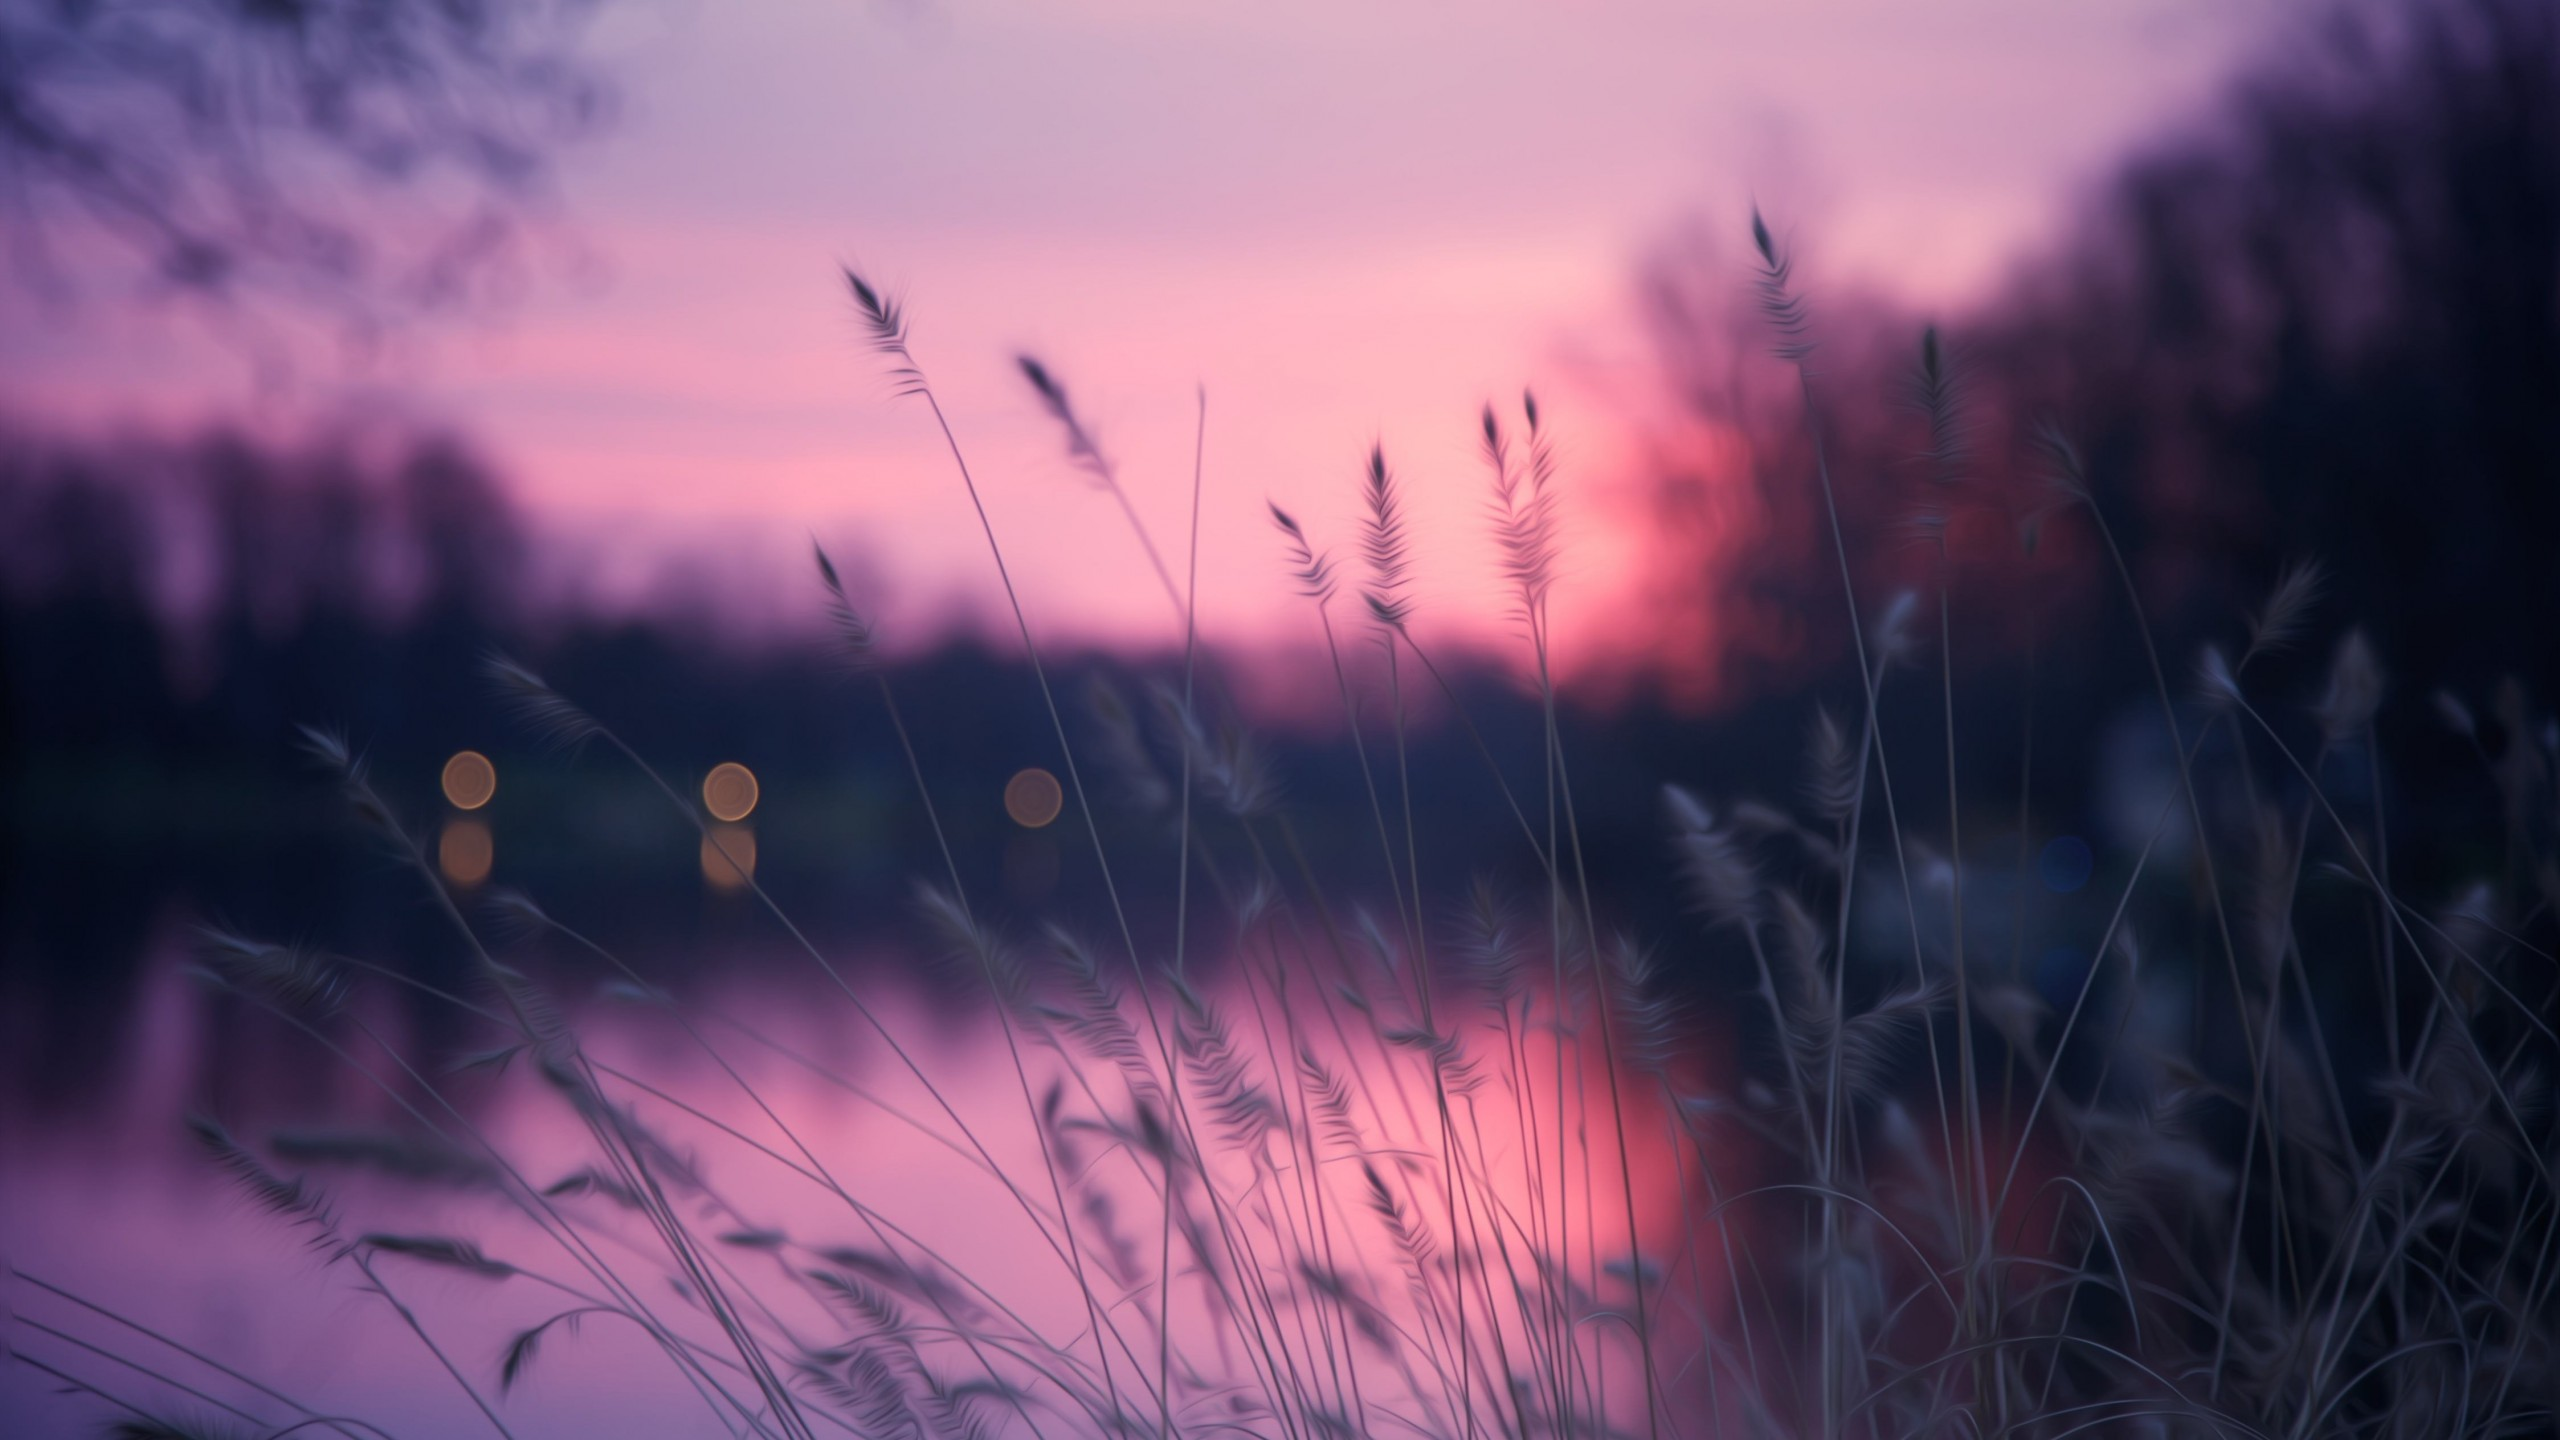 Wallpaper Lake 4k Hd Wallpaper Grass Sunset Purple